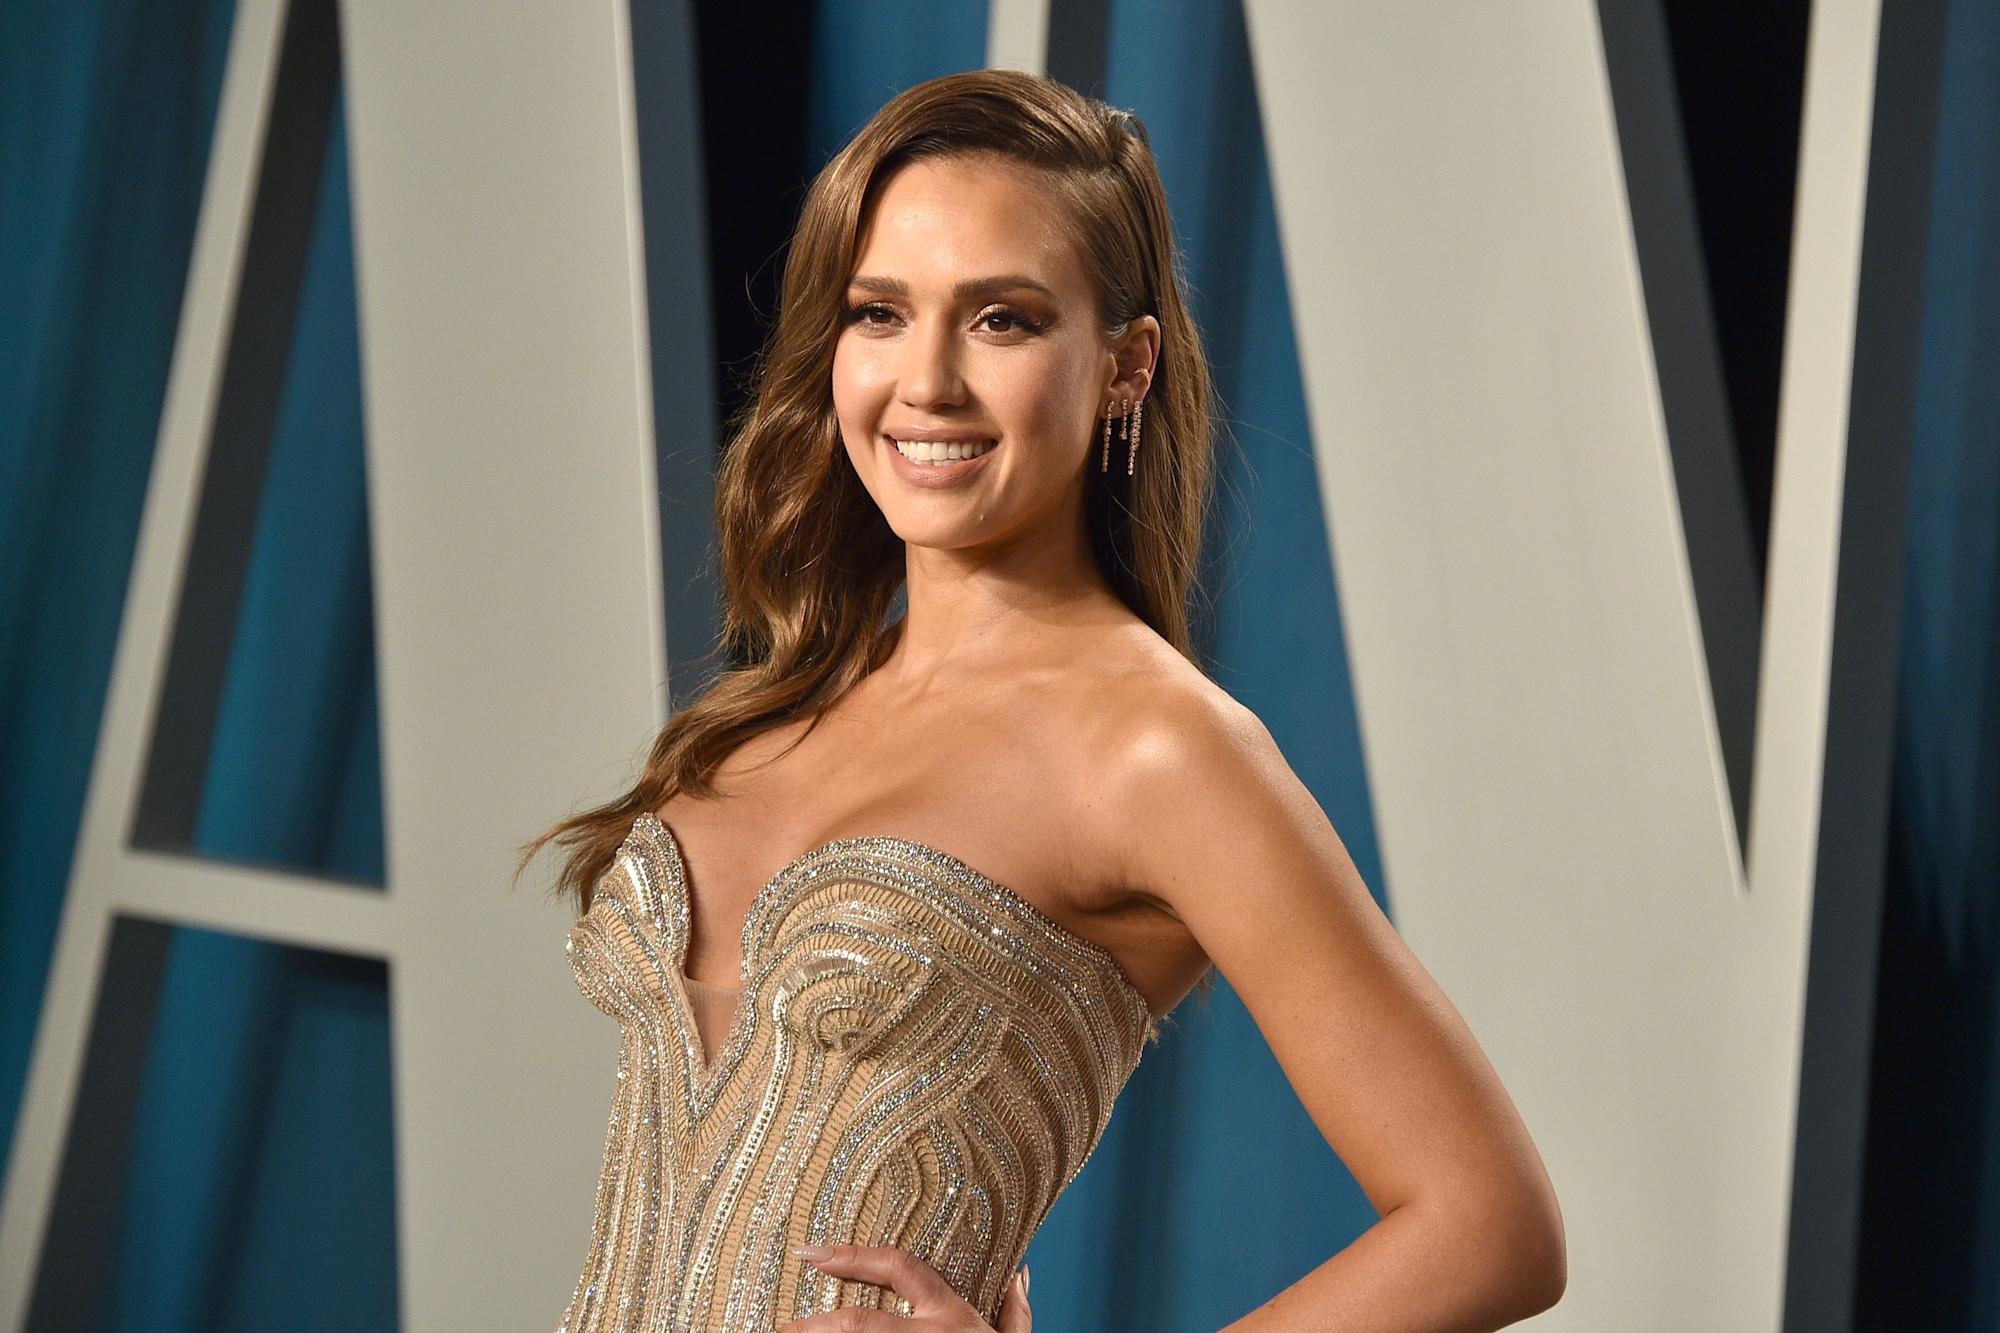 Jessica Alba says she uses spy cameras to keep an eye on her daughters during distance learning